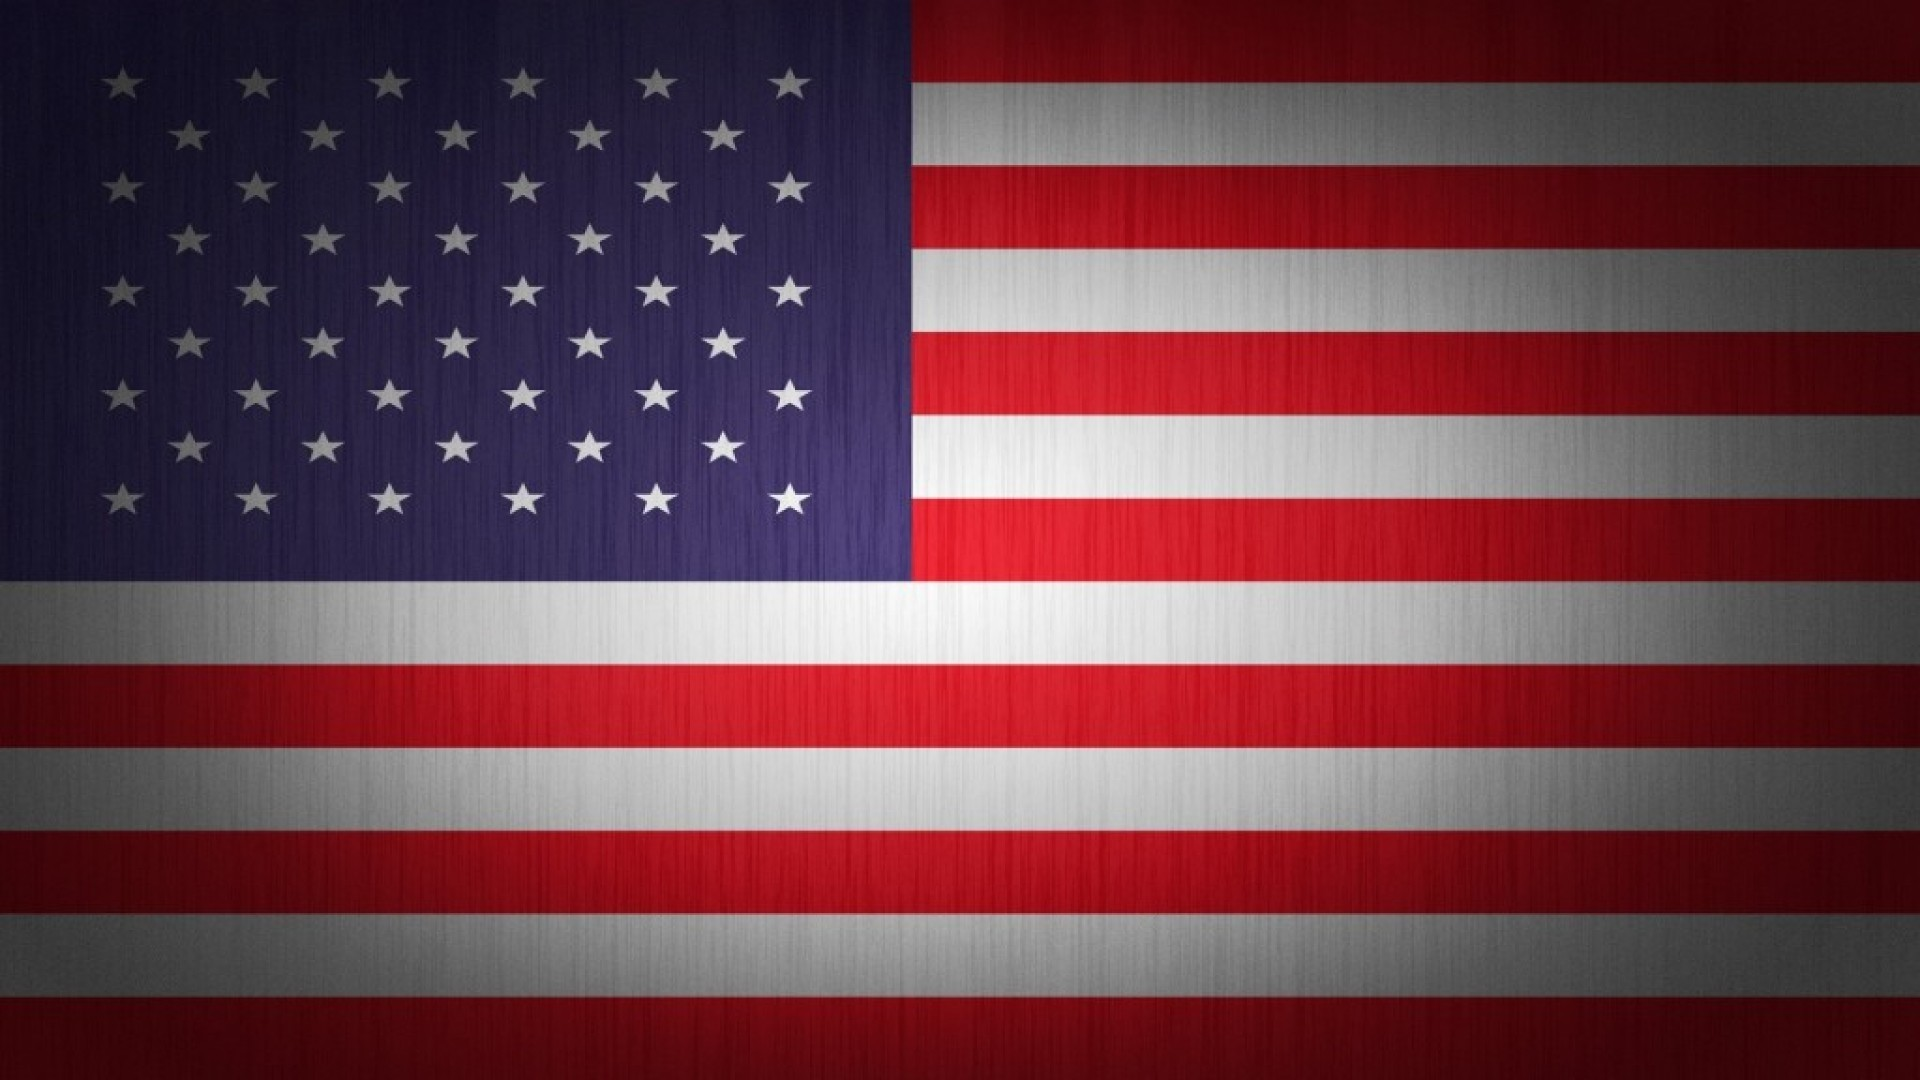 1920x1080 Collection of American Flag Iphone Wallpaper on HDWallpapers 1920×1080